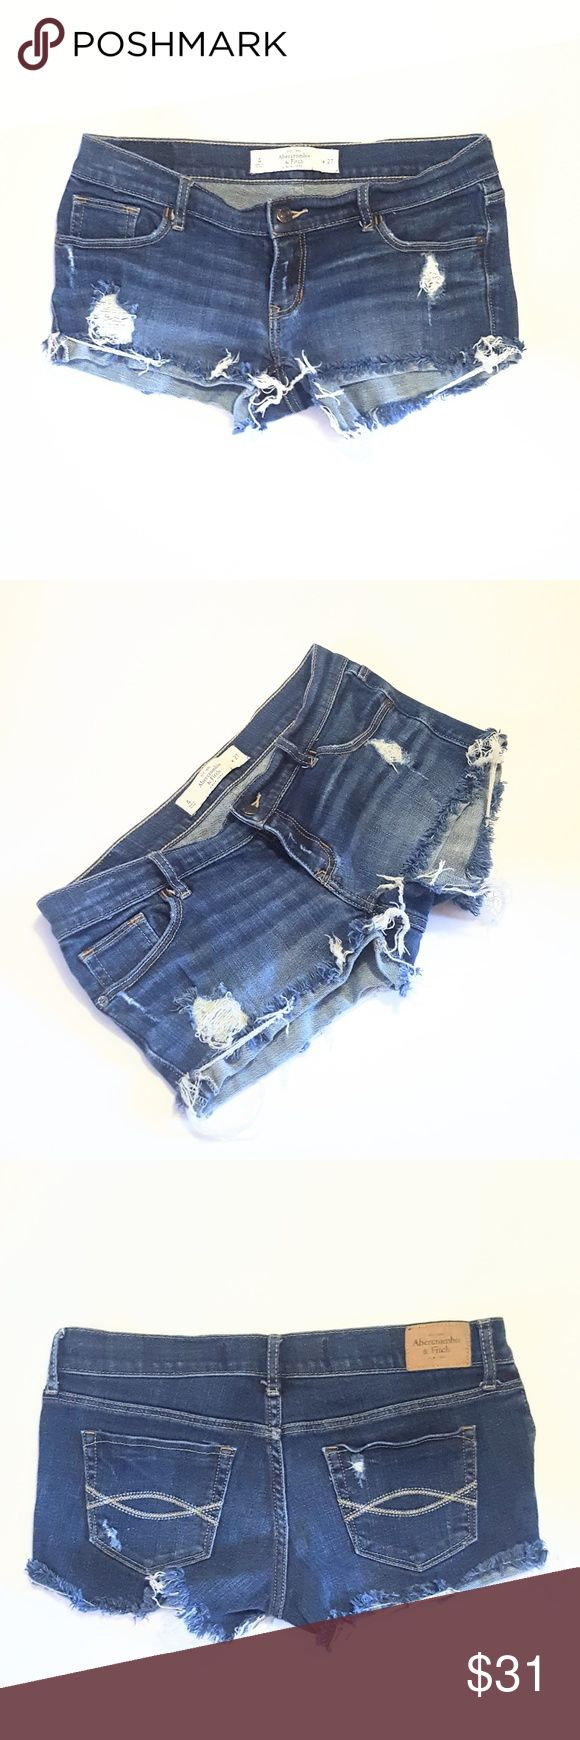 """Abercrombie & Fitch Ripped Denim Cutoff Shorts Excellent condition overall with some pilling on the inner pockets and around label. Company distressed and cut off. 99% cotton, 1% elastane.  Waist approx 14 7/8"""" across when flat, rise 6 1/4"""", inseam 2 1/4"""". All measurements approximate. Abercrombie & Fitch Shorts Jean Shorts"""